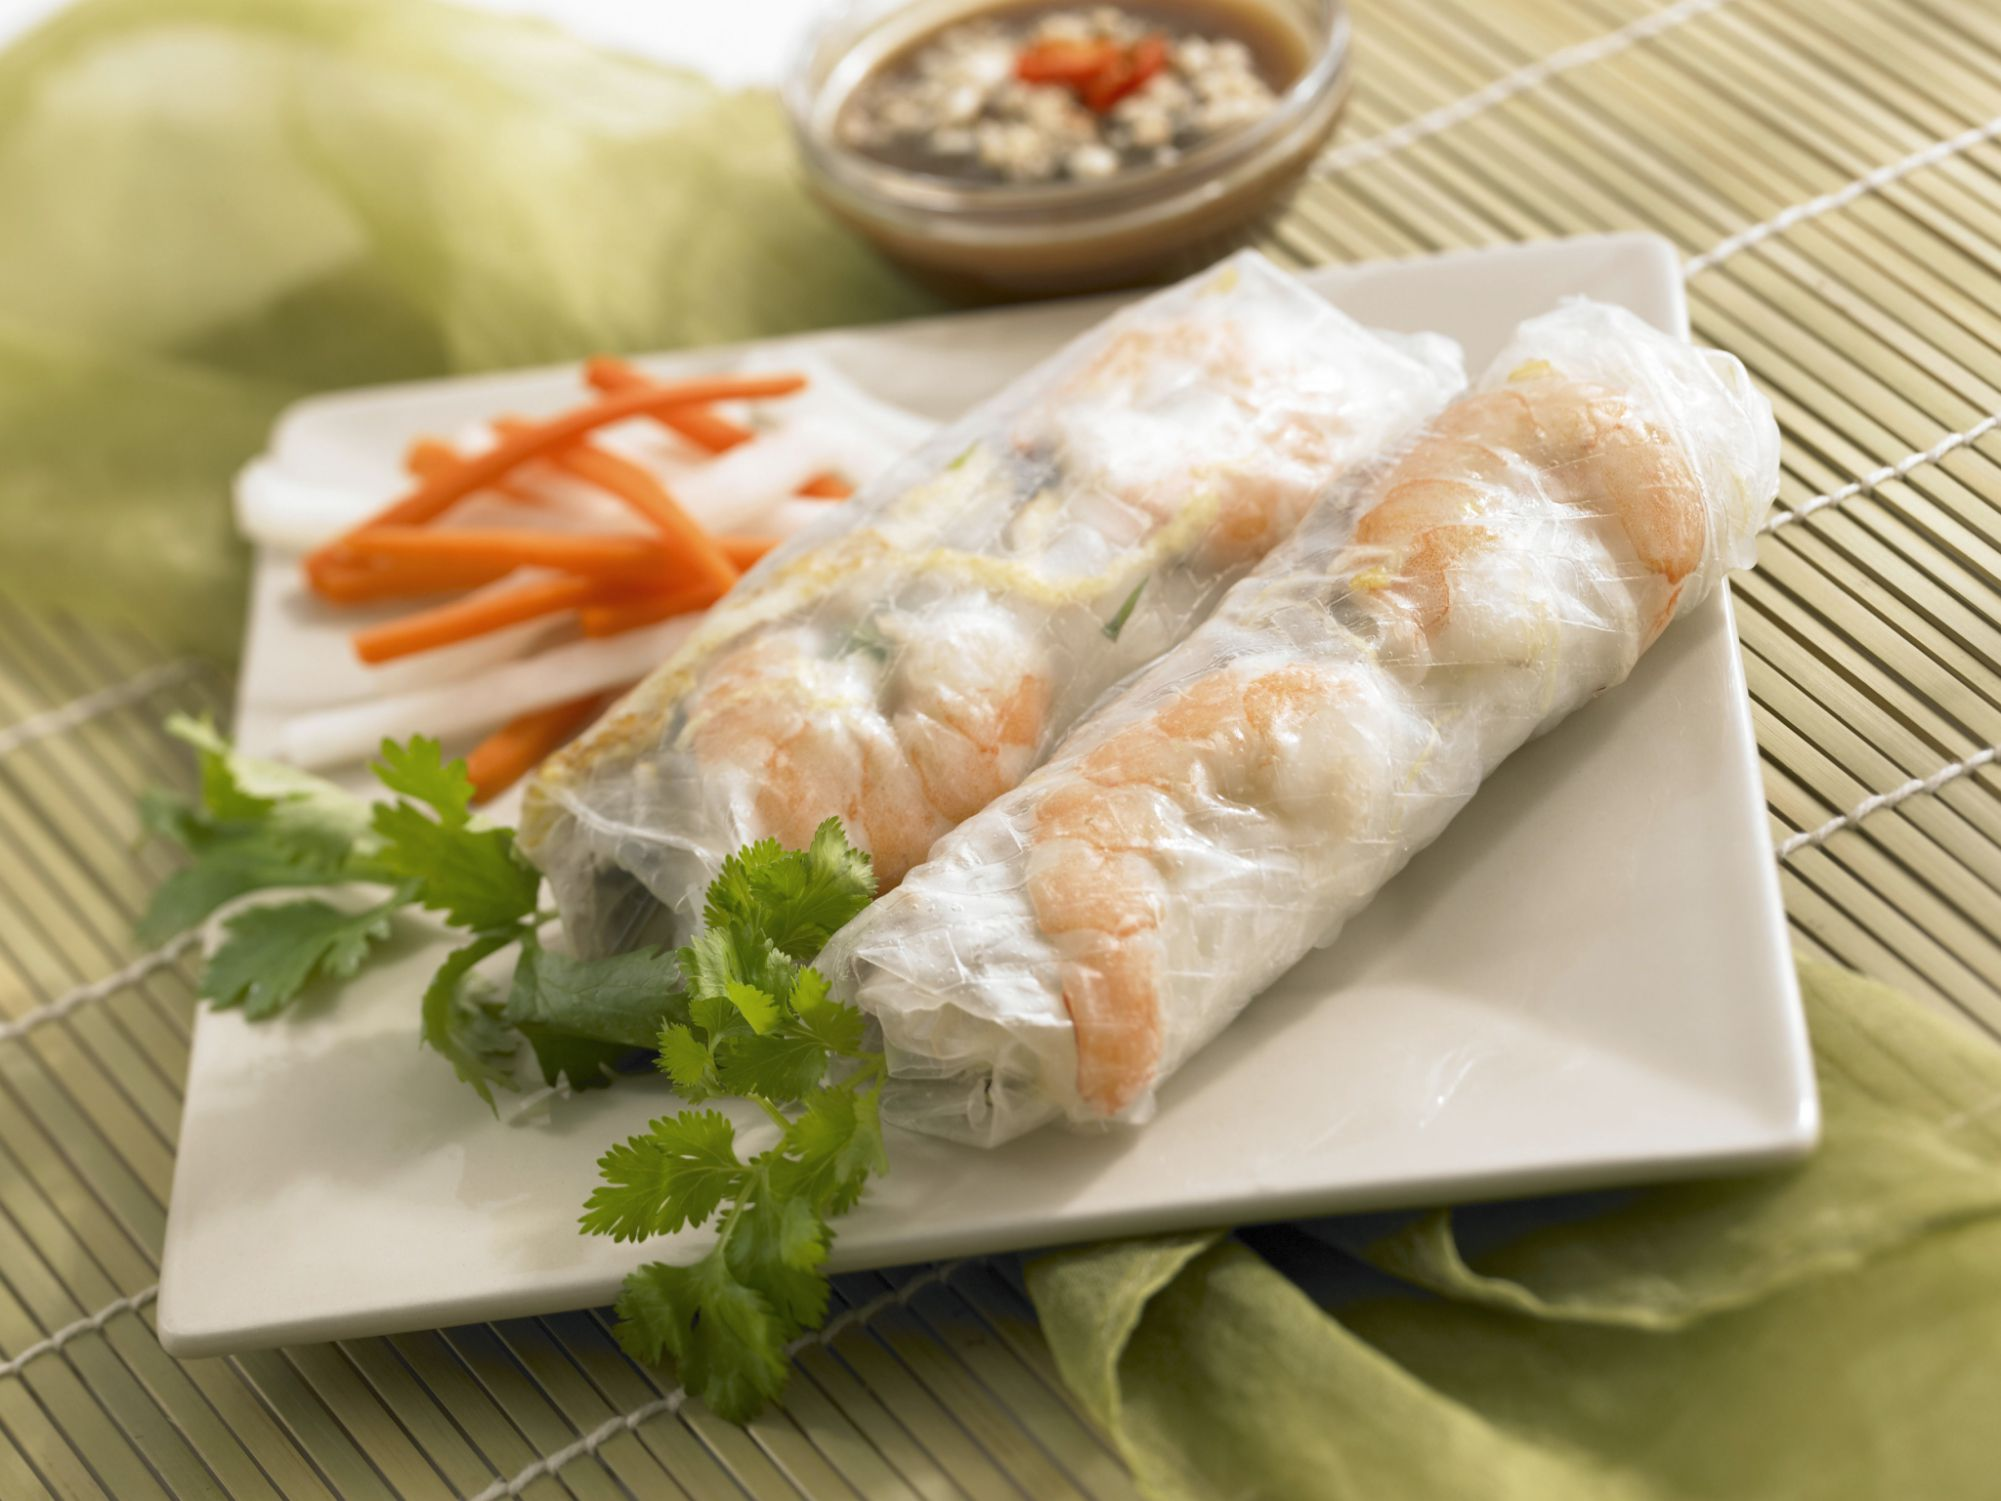 Healthy Vietnamese Food That's Lower in Calories